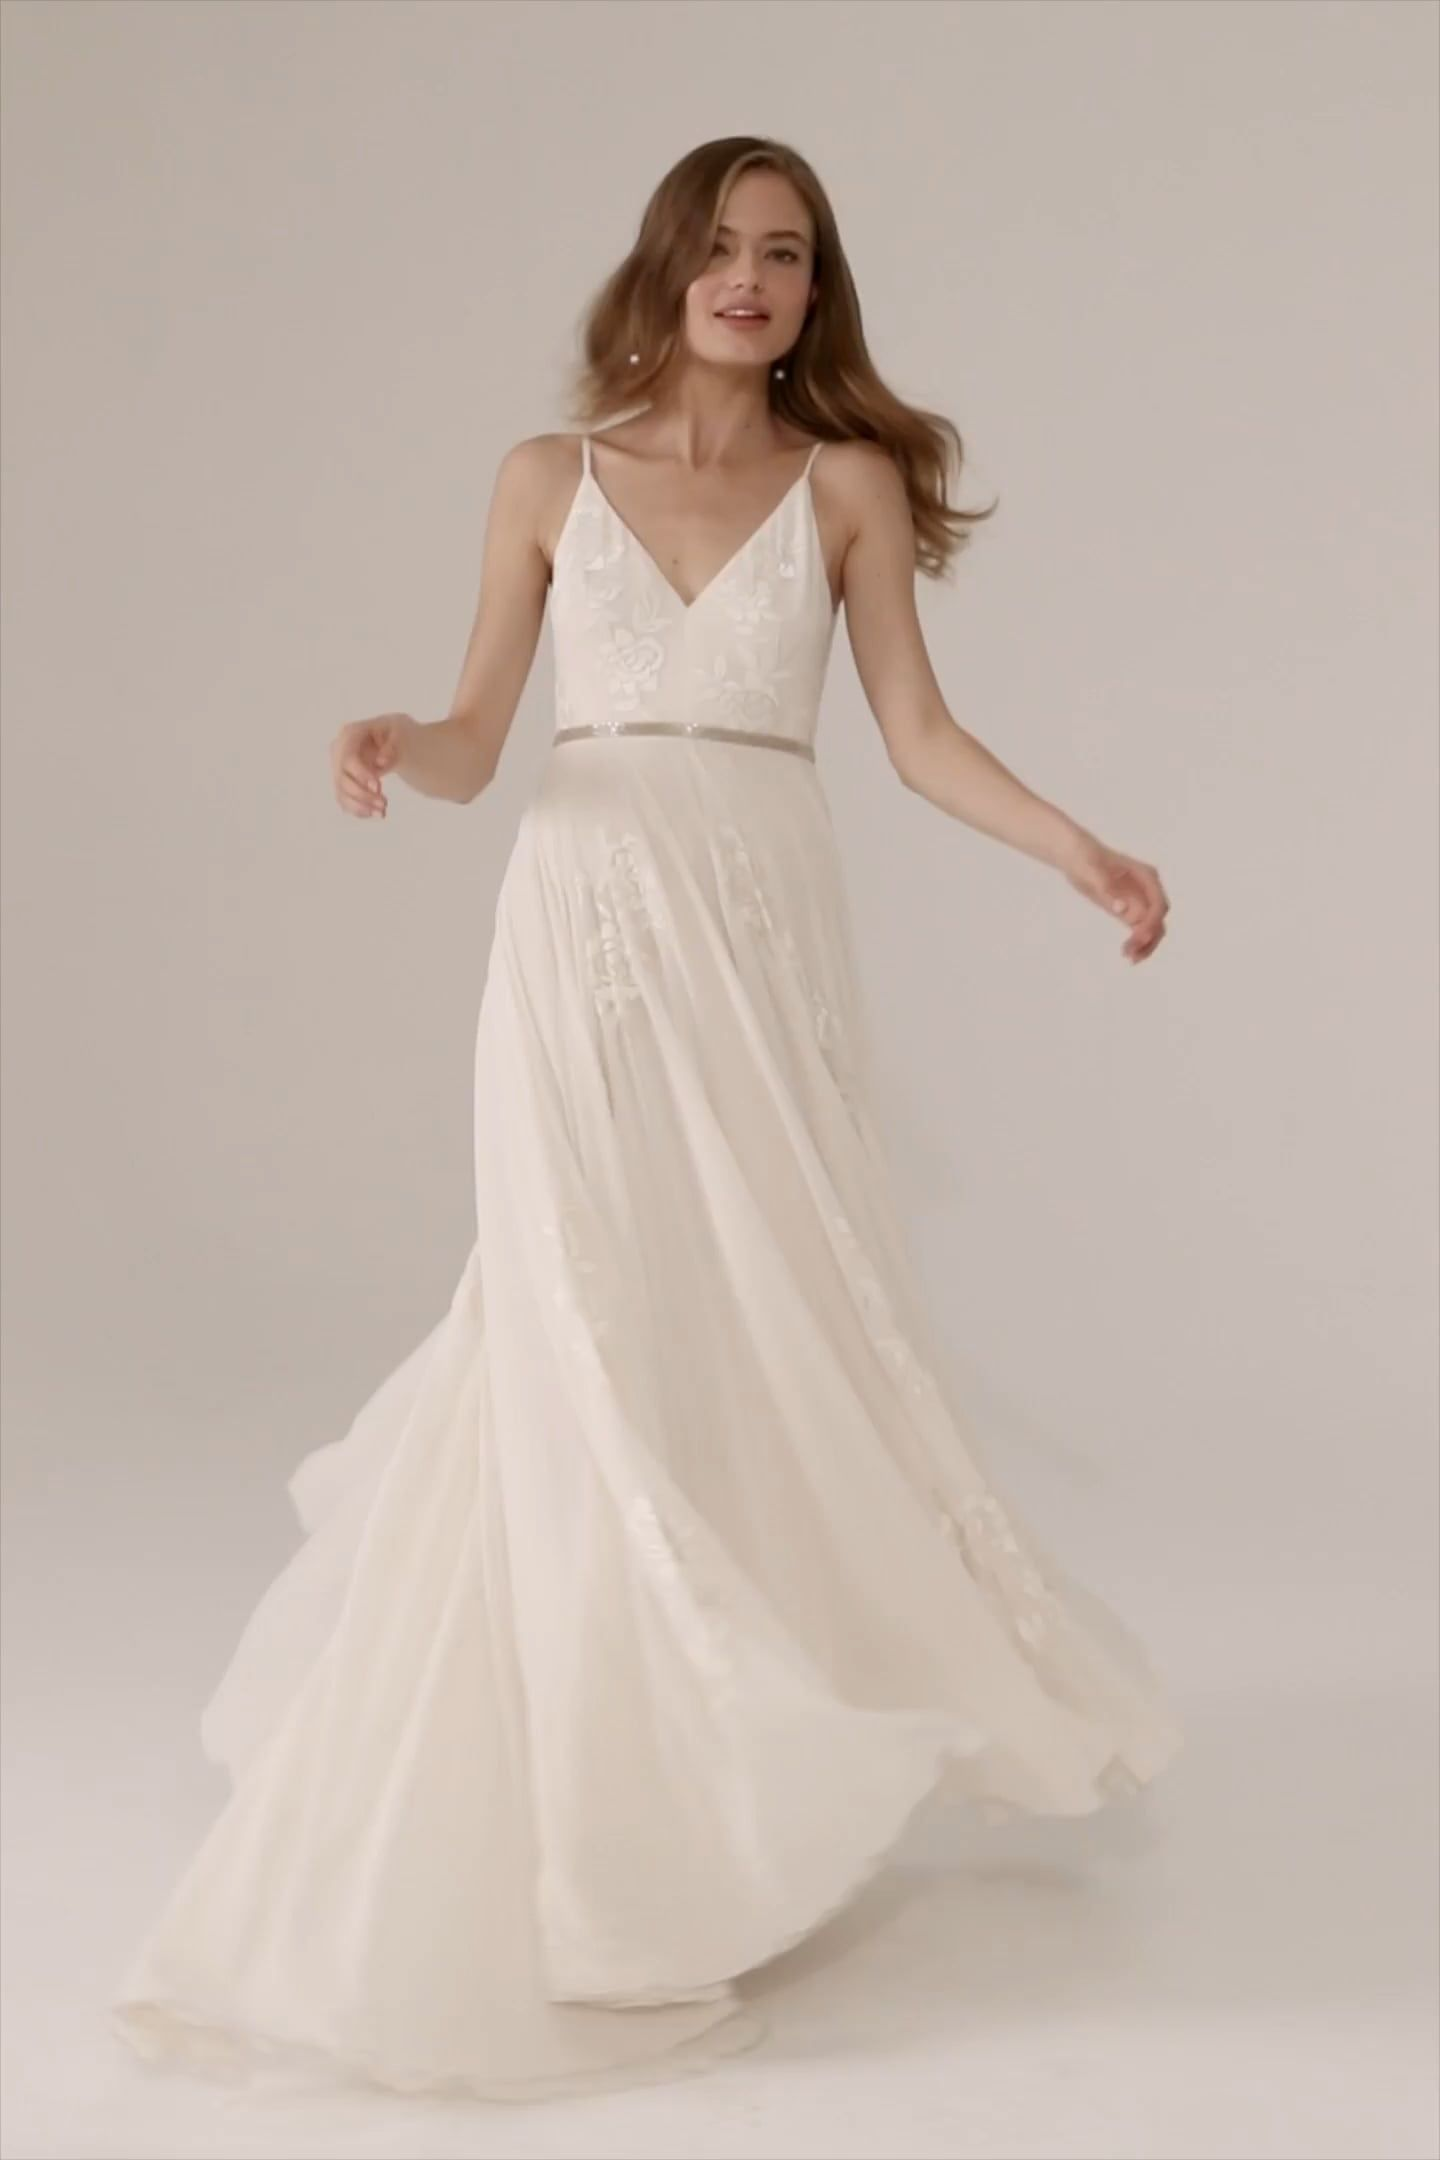 5a5d76775a73 BHLDN's Dreams of You Gown in Ivory in 2019   Wedding   Wedding ...